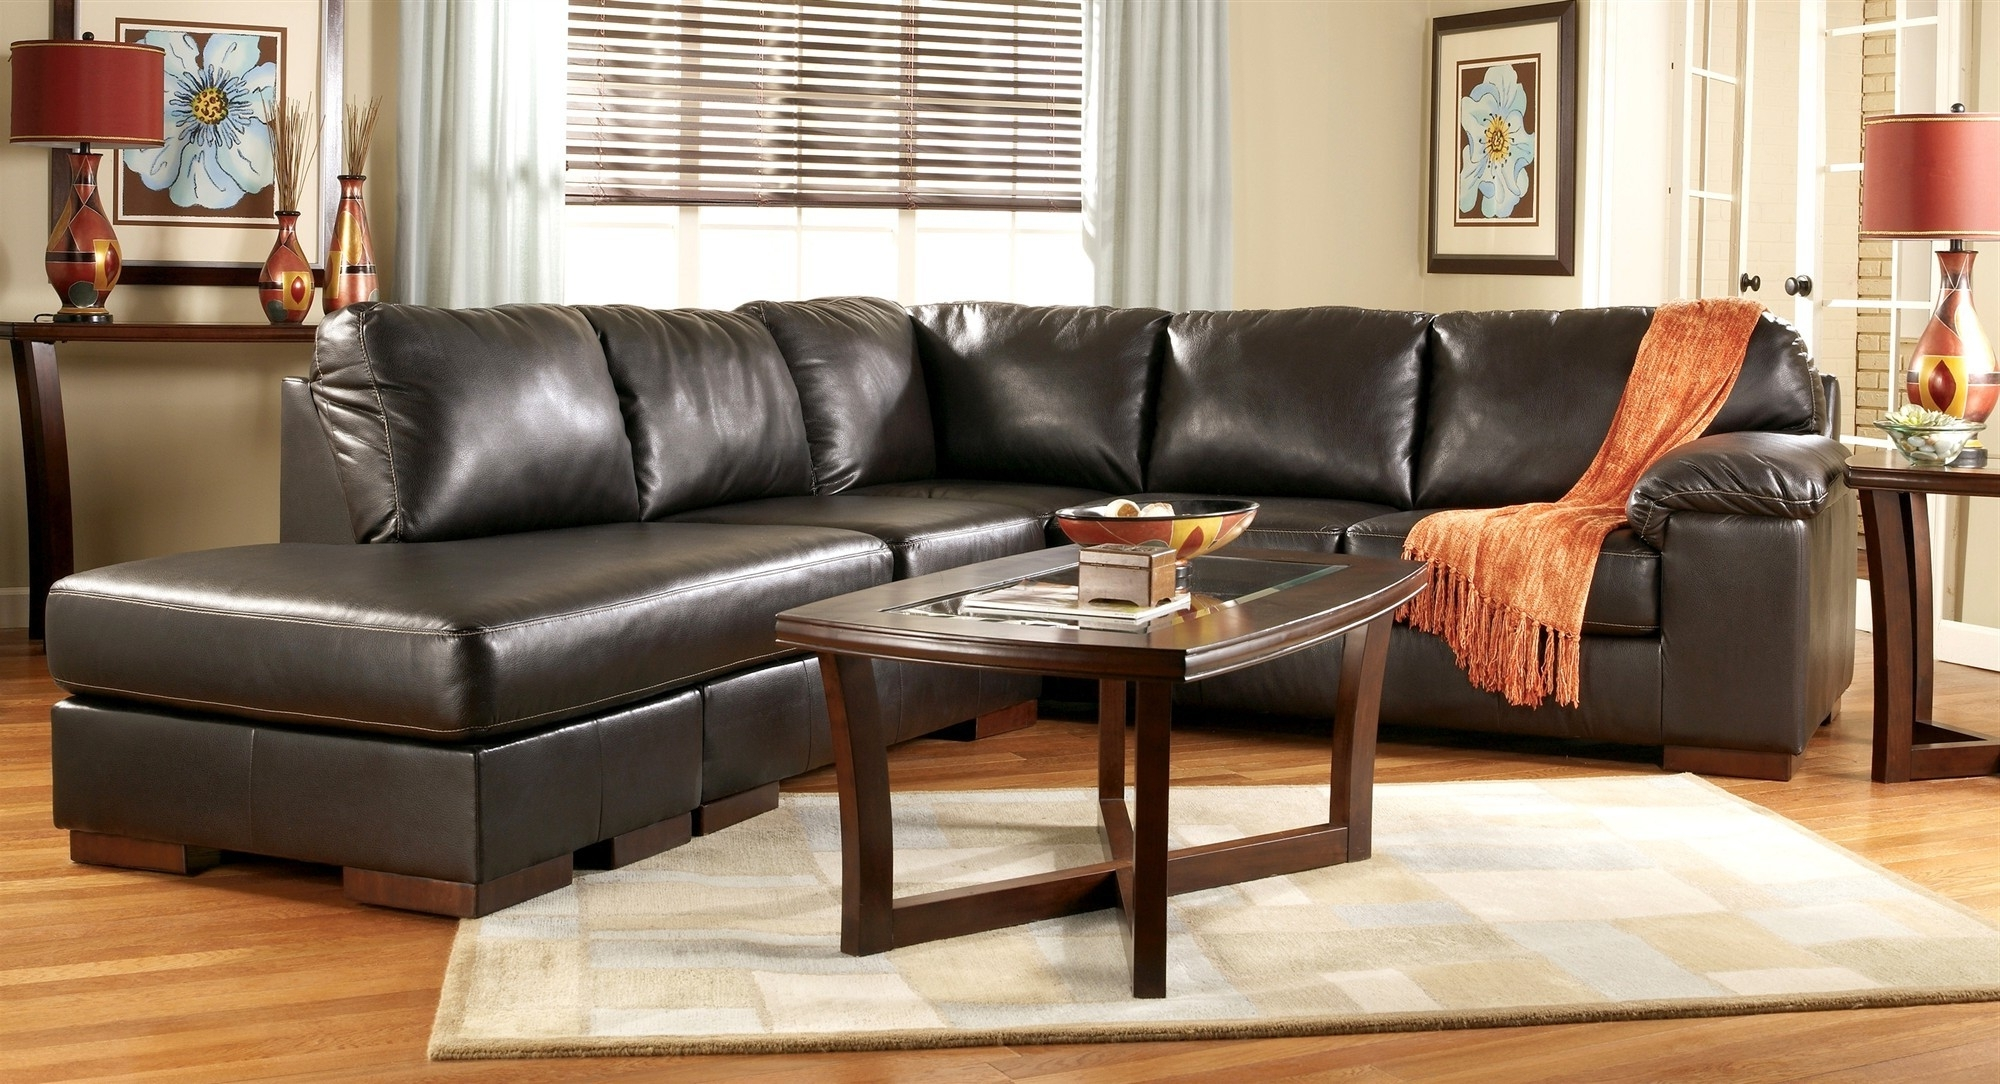 Clearance Sectional Sofas Within Widely Used Small Sectional Couch Ethan Allen Sofas Clearance Big Lots (View 7 of 20)